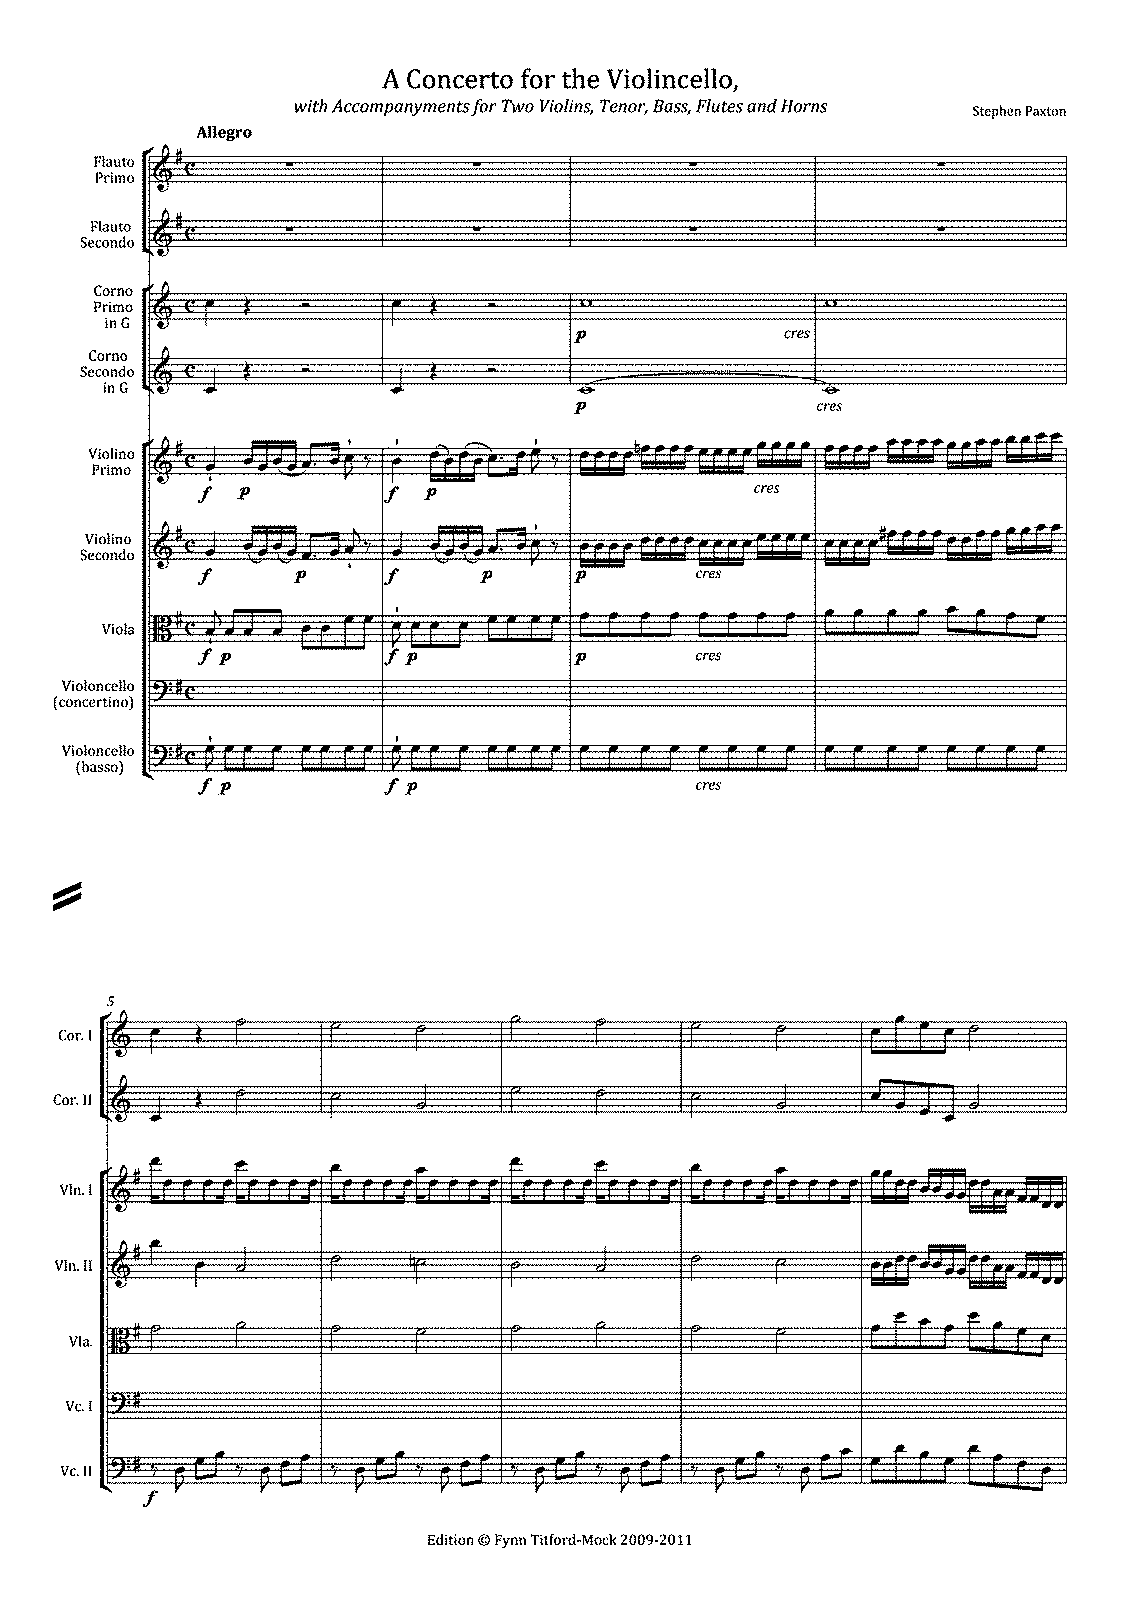 PMLP24503-Paxton Concerto for the Violincello.pdf